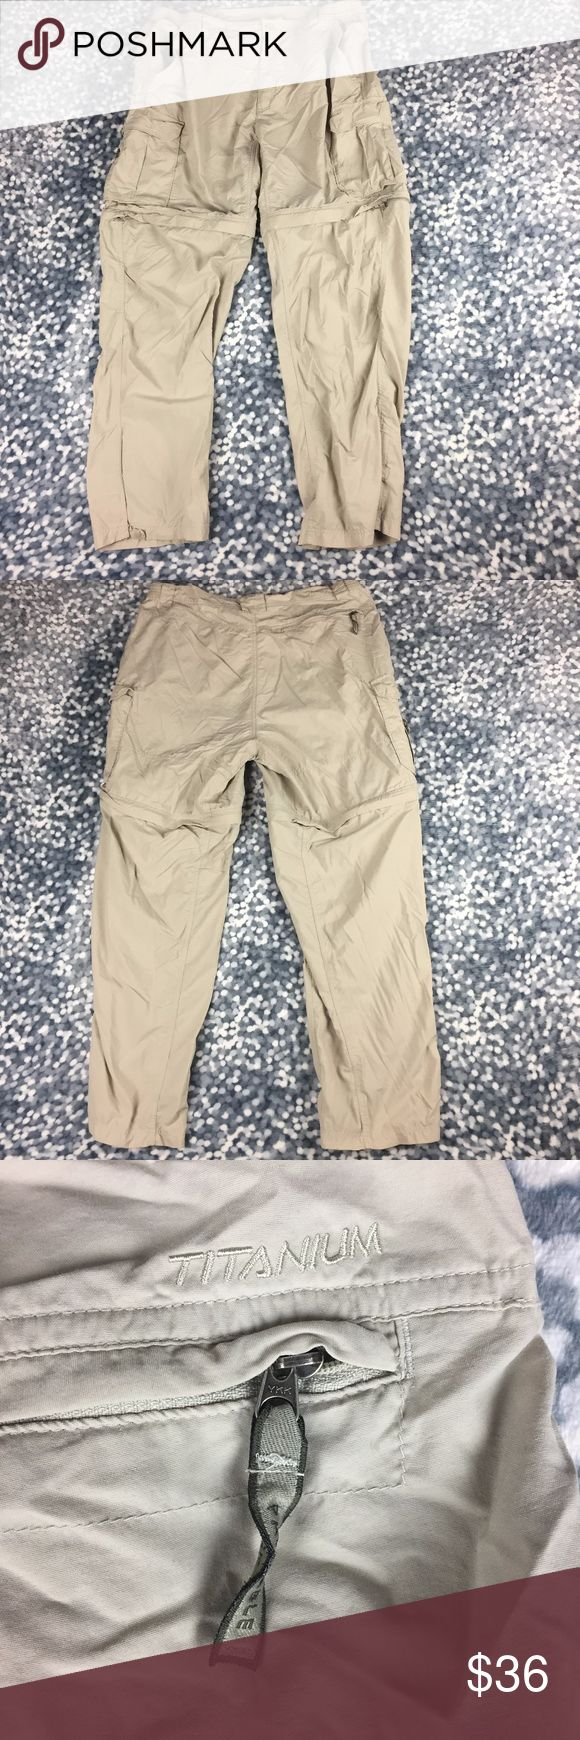 Columbia Sportswear Titanium Khaki Convert 90A8 Columbia Sportswear Titanium Khaki Tan Convertible Zip Off Pants Shorts Cargo Large.  Waist measures 18 inches unstretched, inseam measures 32 inches (all measurements one side laying flat). Columbia Sportswear Shorts Athletic